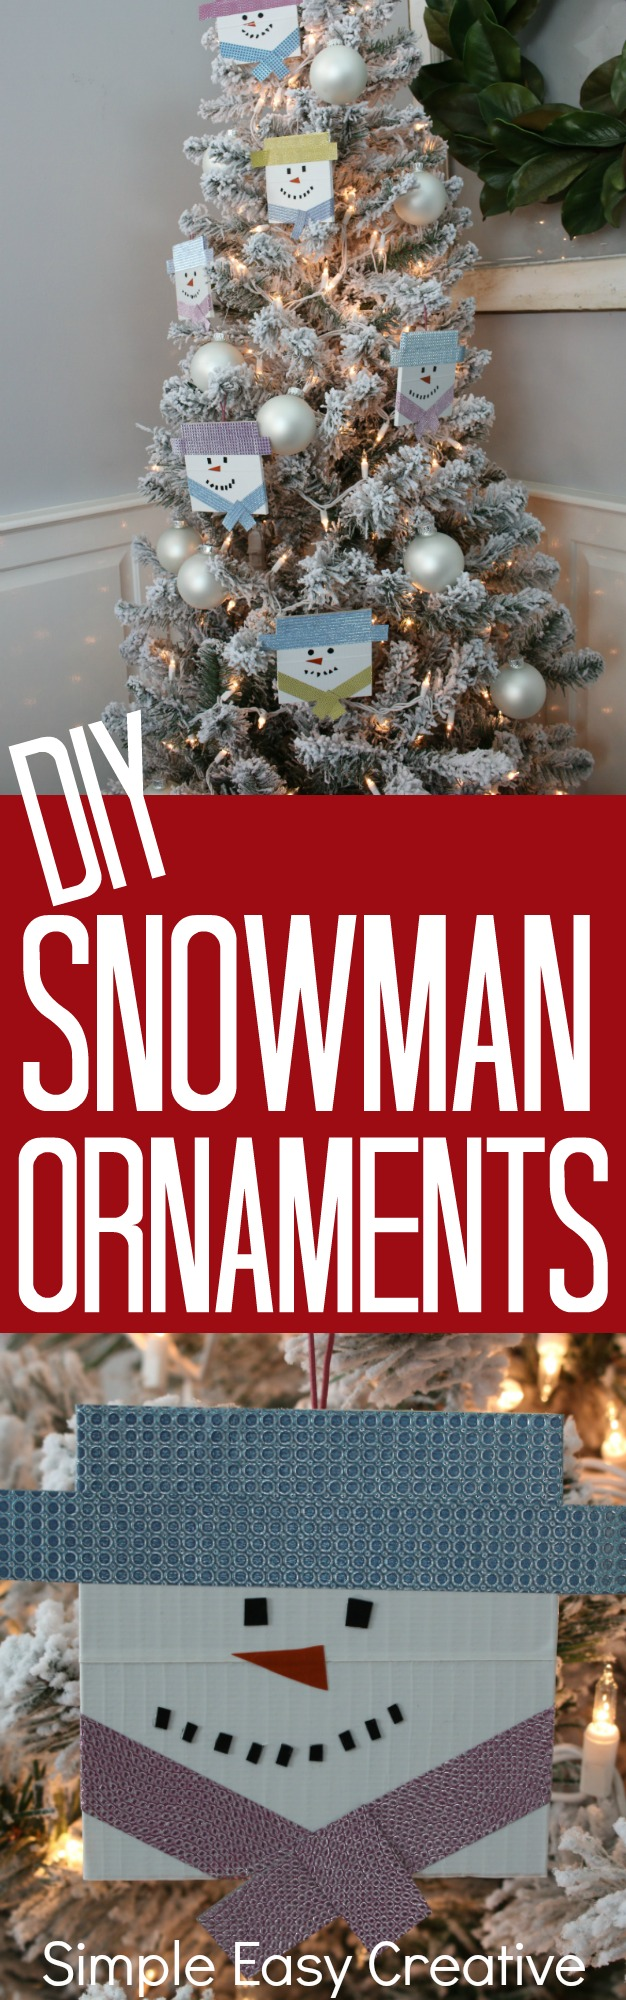 Craft DIY Snowman Ornaments Snowman Ornament